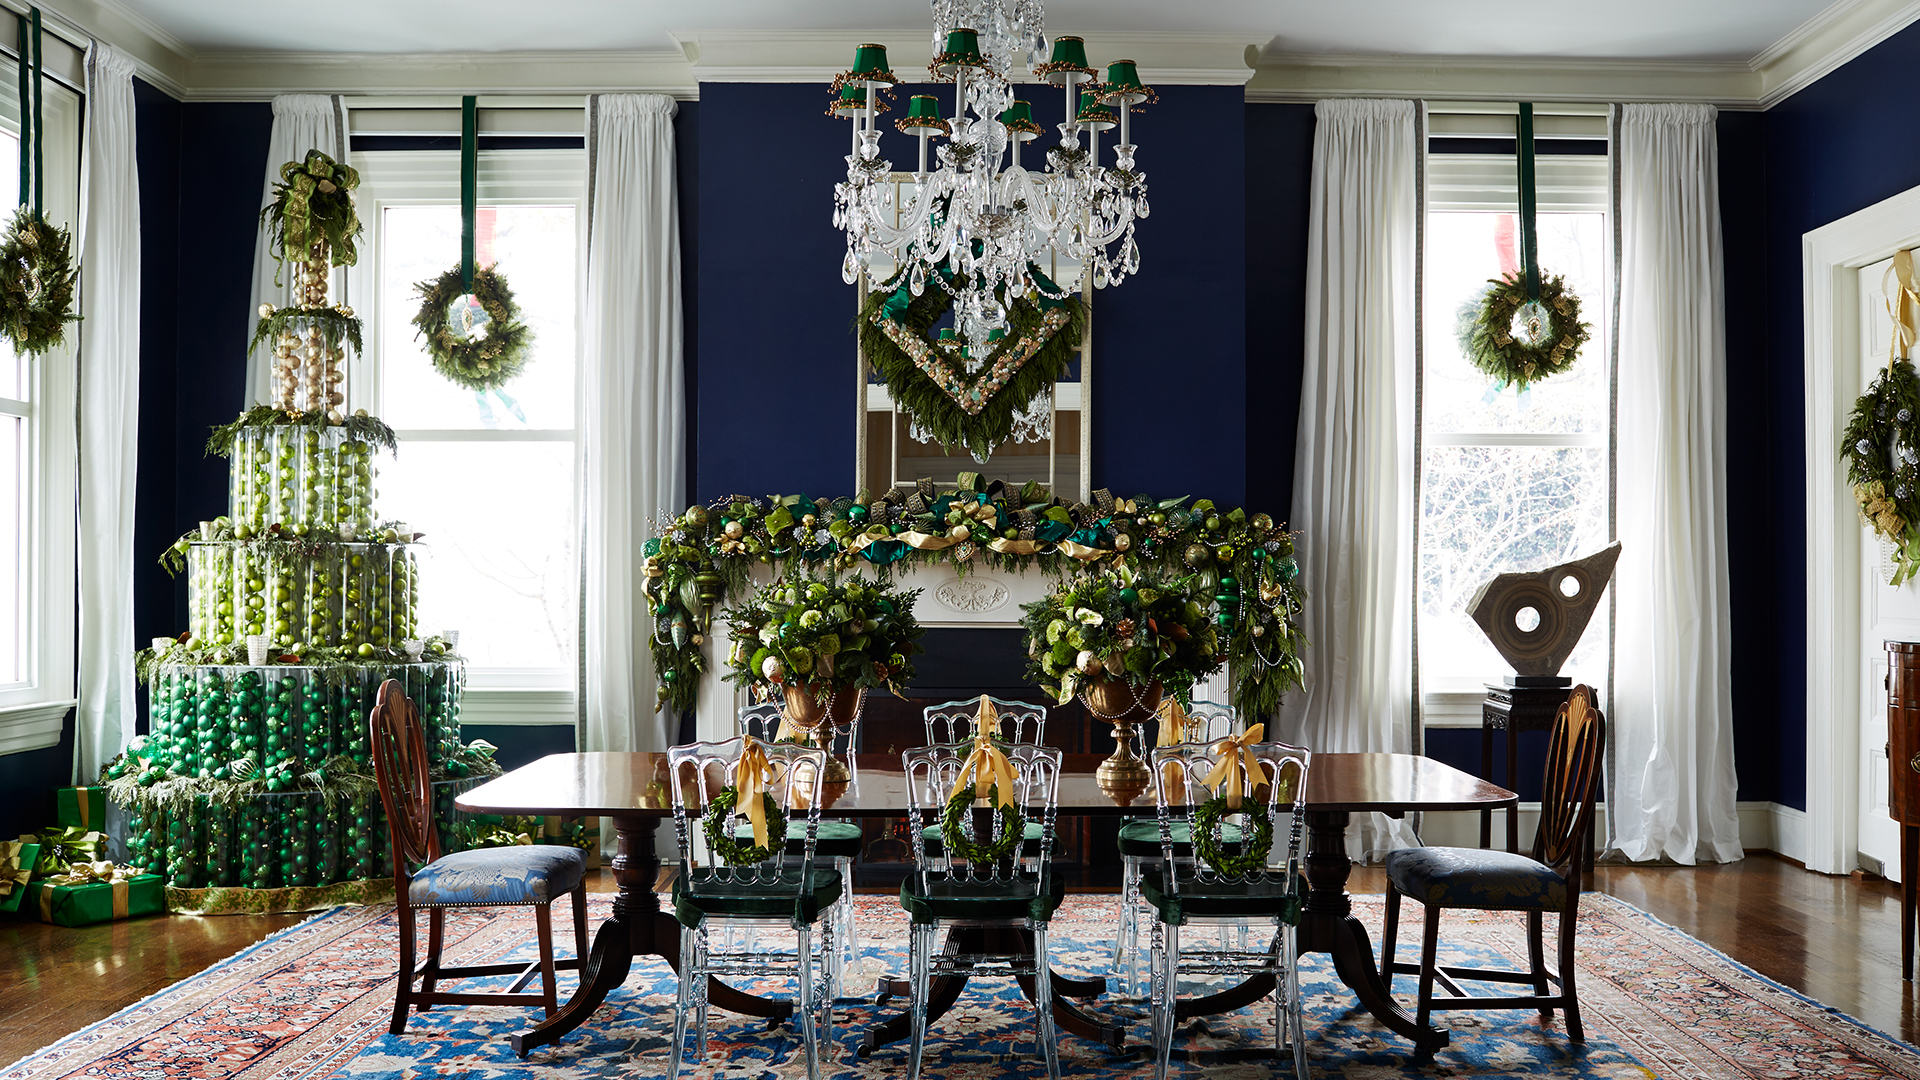 vice president joe biden 39 s home is decorated for christmas see inside. Black Bedroom Furniture Sets. Home Design Ideas